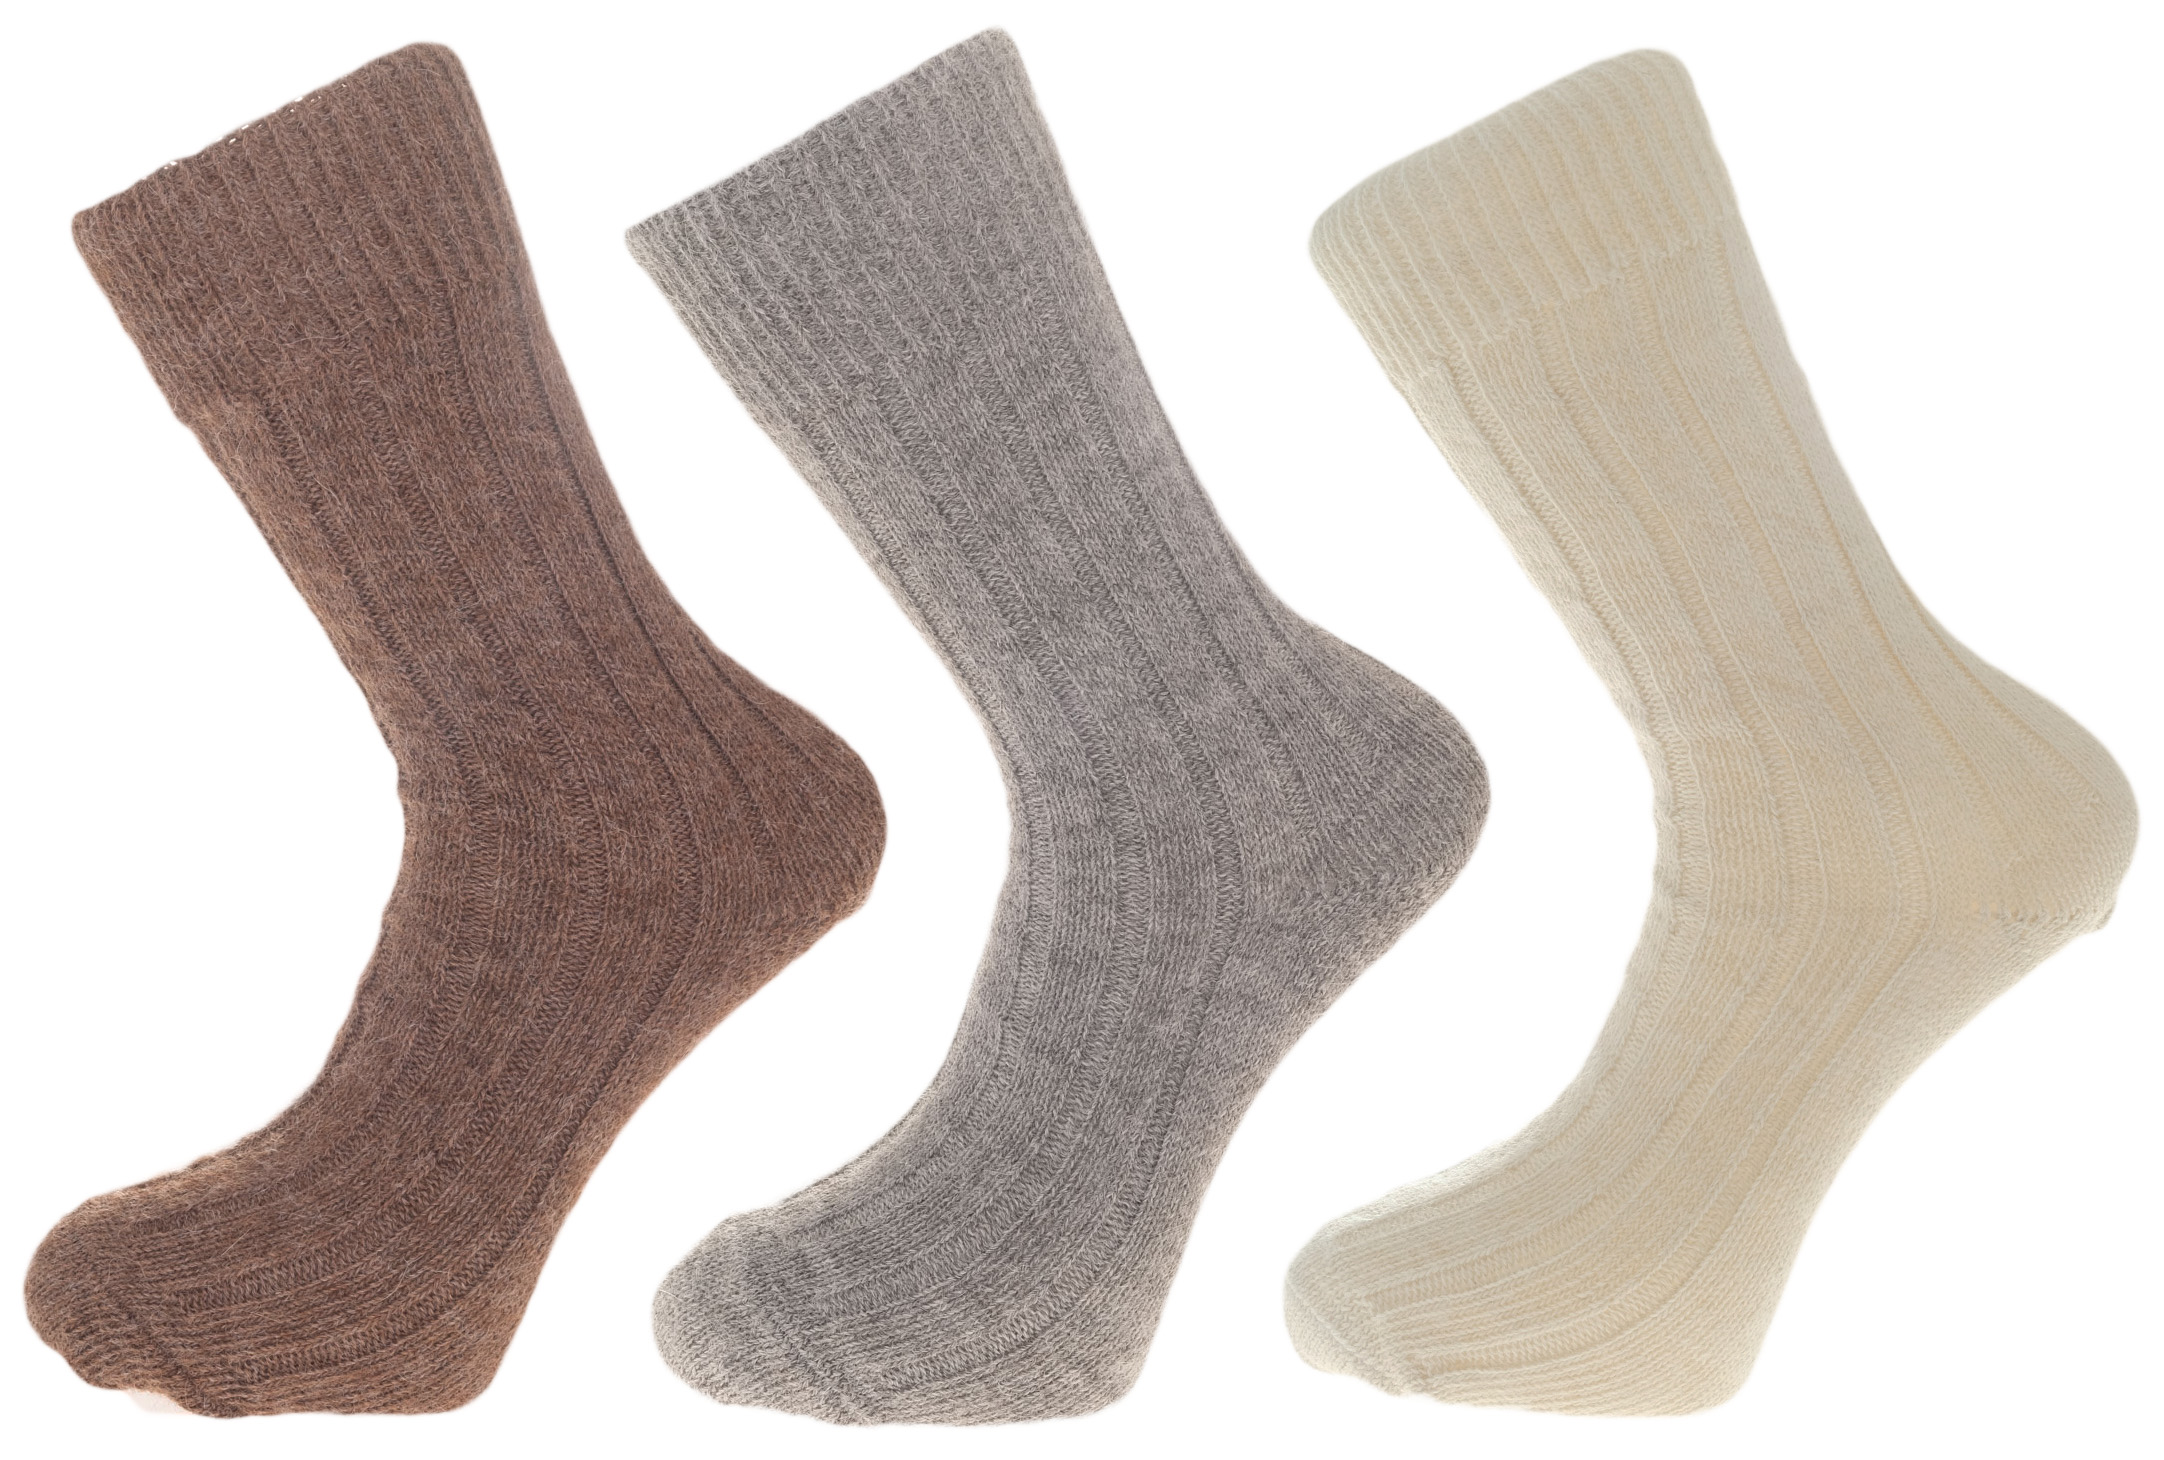 Gift Pack Idea J 3 Pairs Of Alpaca Bed Socks, Warm and Soft, 90% Alpaca Wool. Alpaca Sock